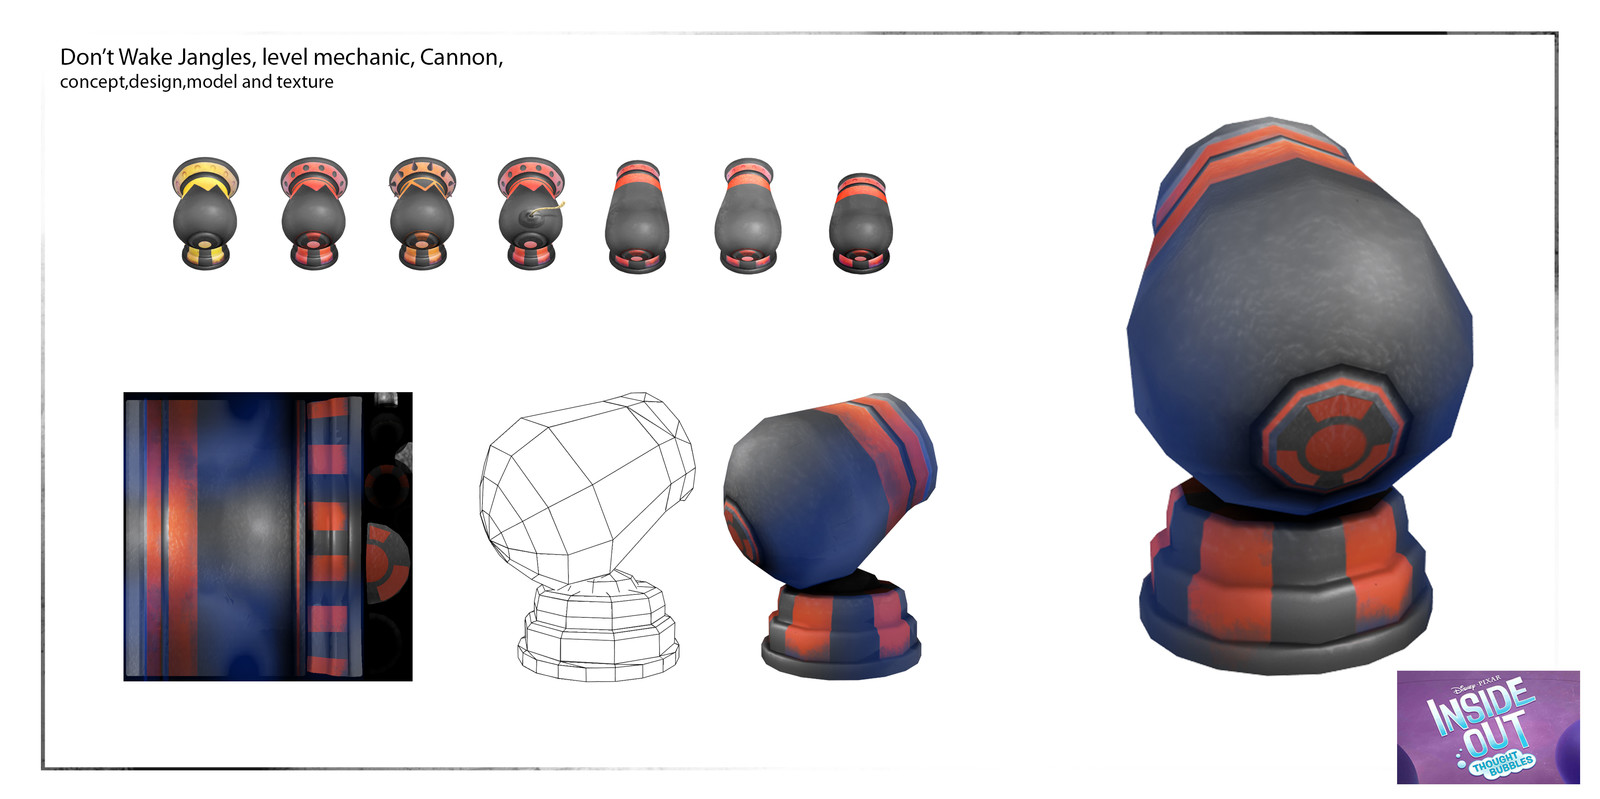 Conceptualized, design , model, painted texture and base animation for game mechanic